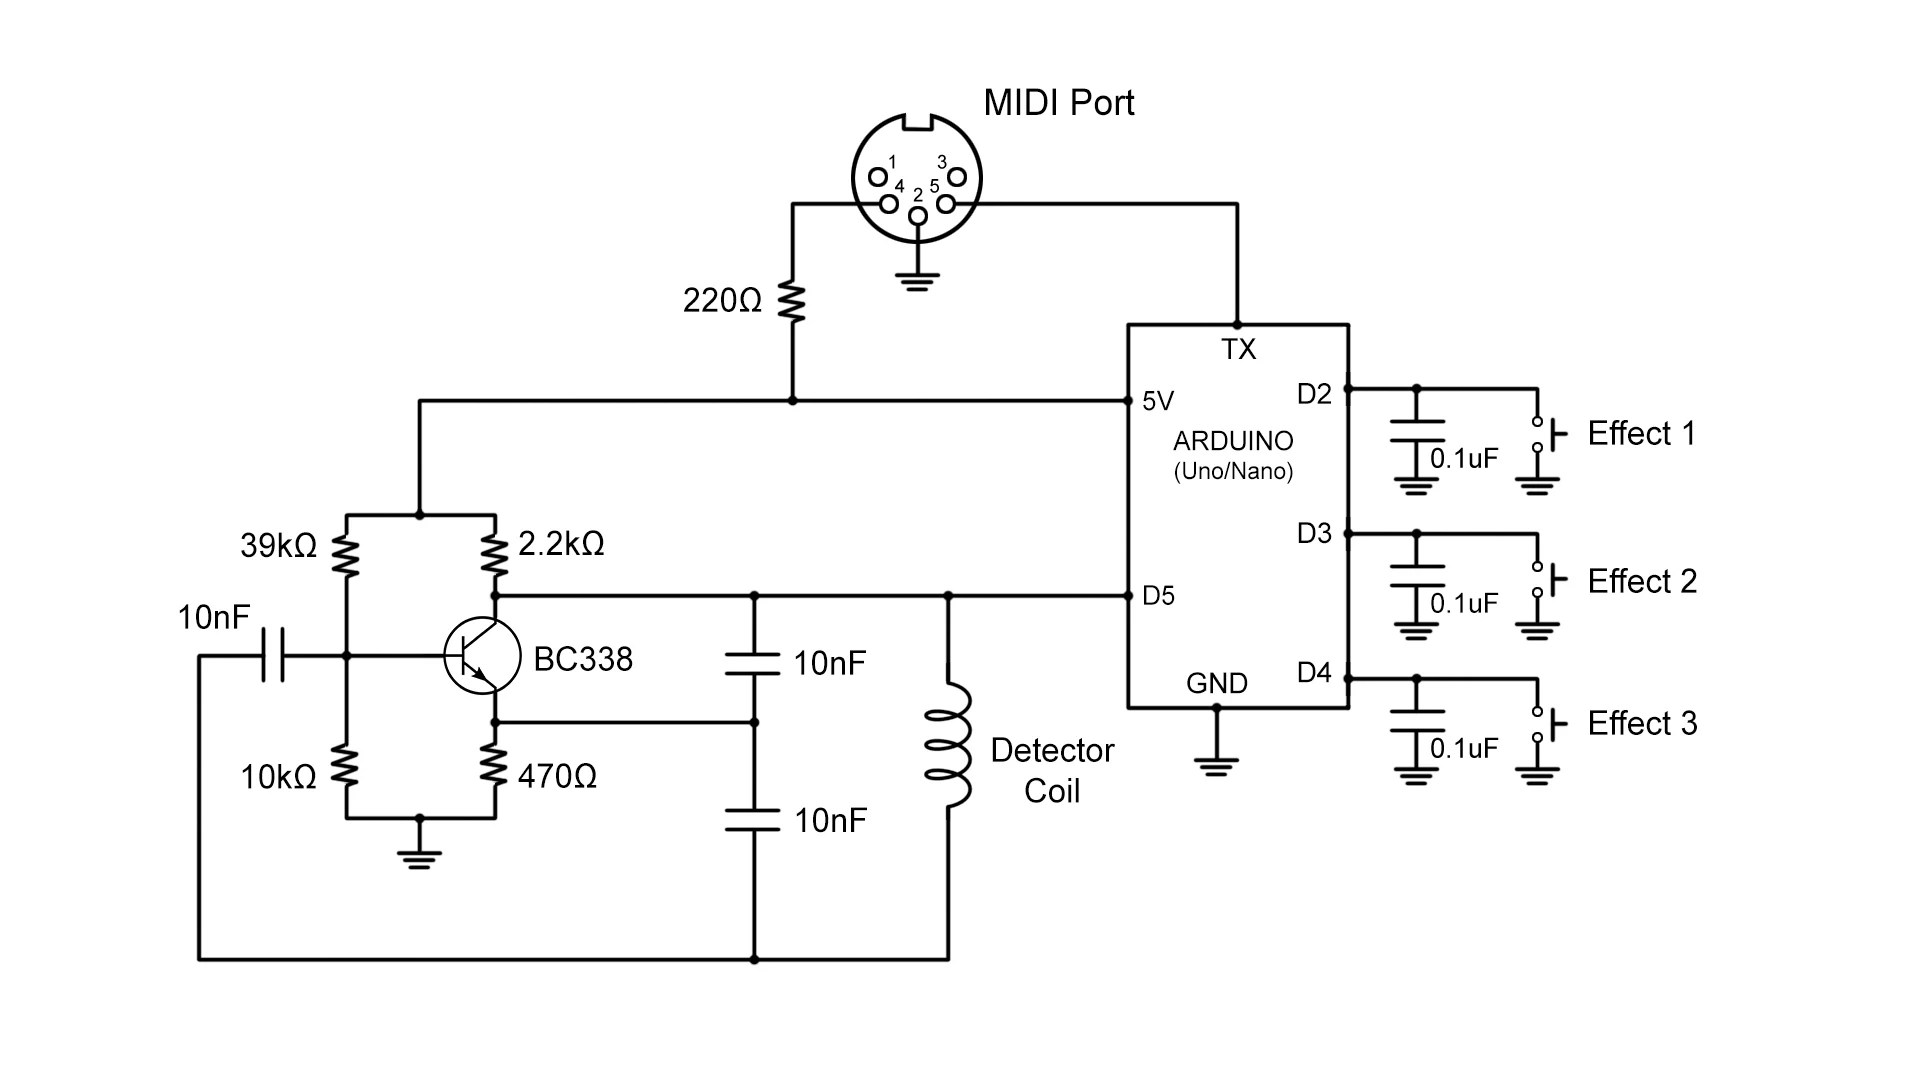 Sound Wiring Schematic How To Build A Touchless Midi Controller With Arduino